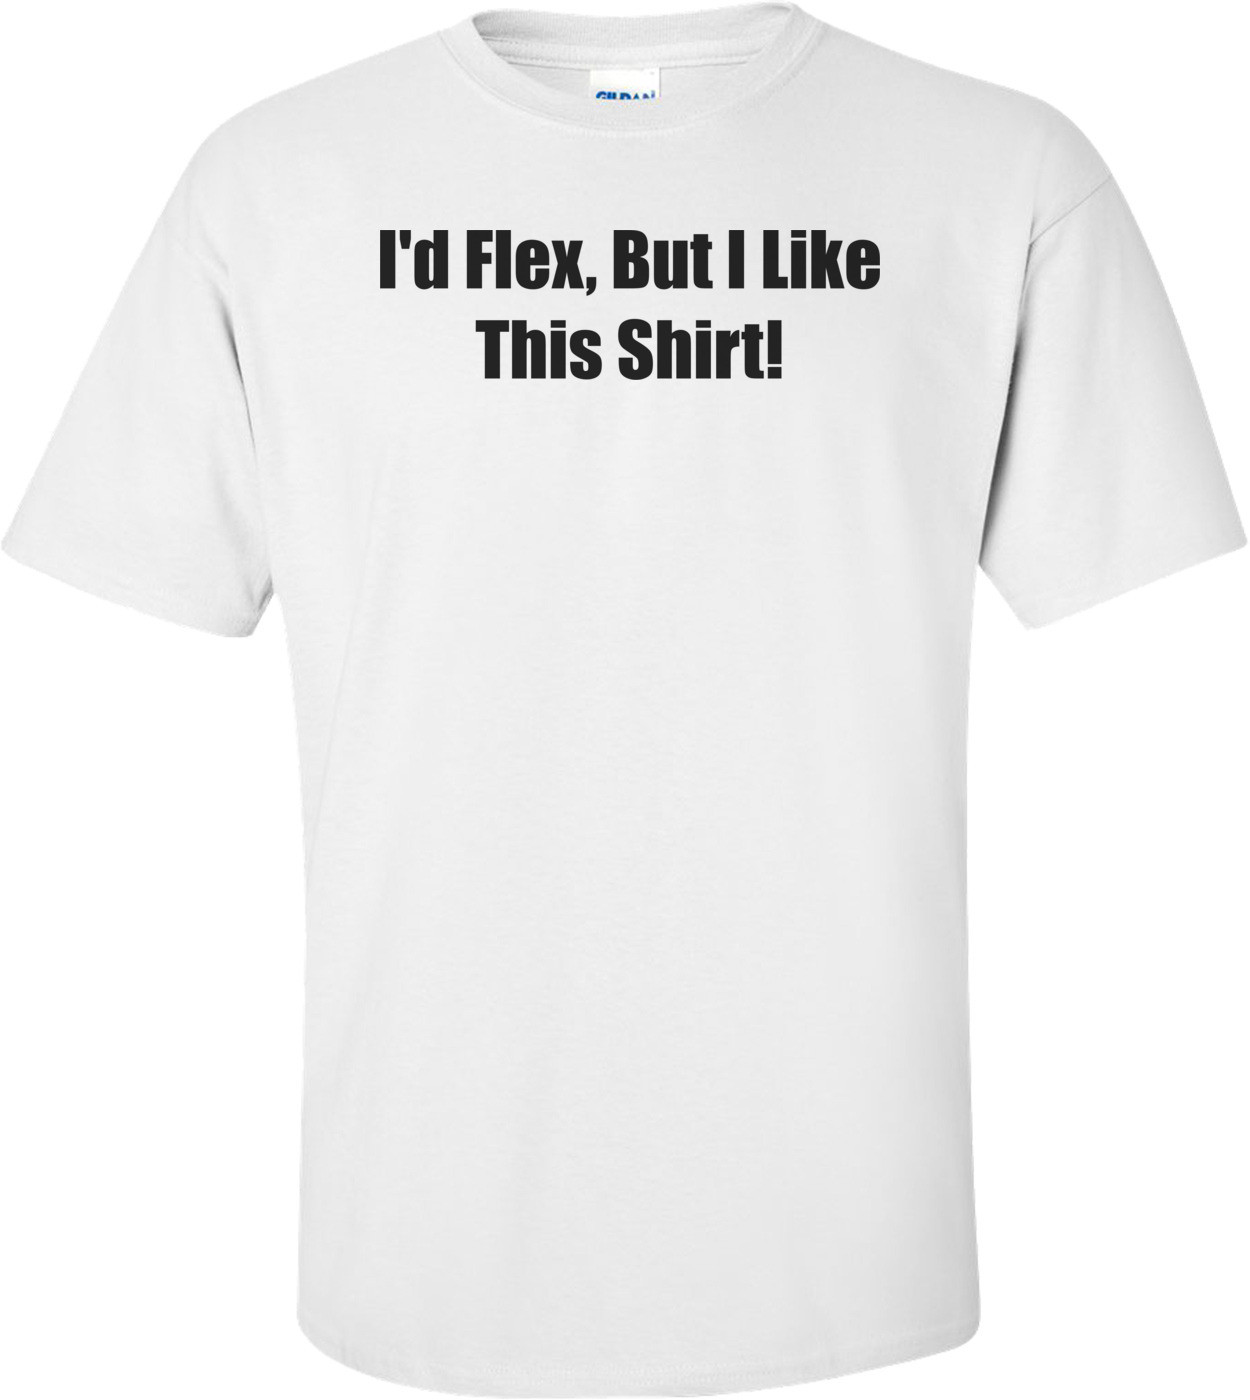 I'd Flex, But I Like This Shirt! T-Shirt